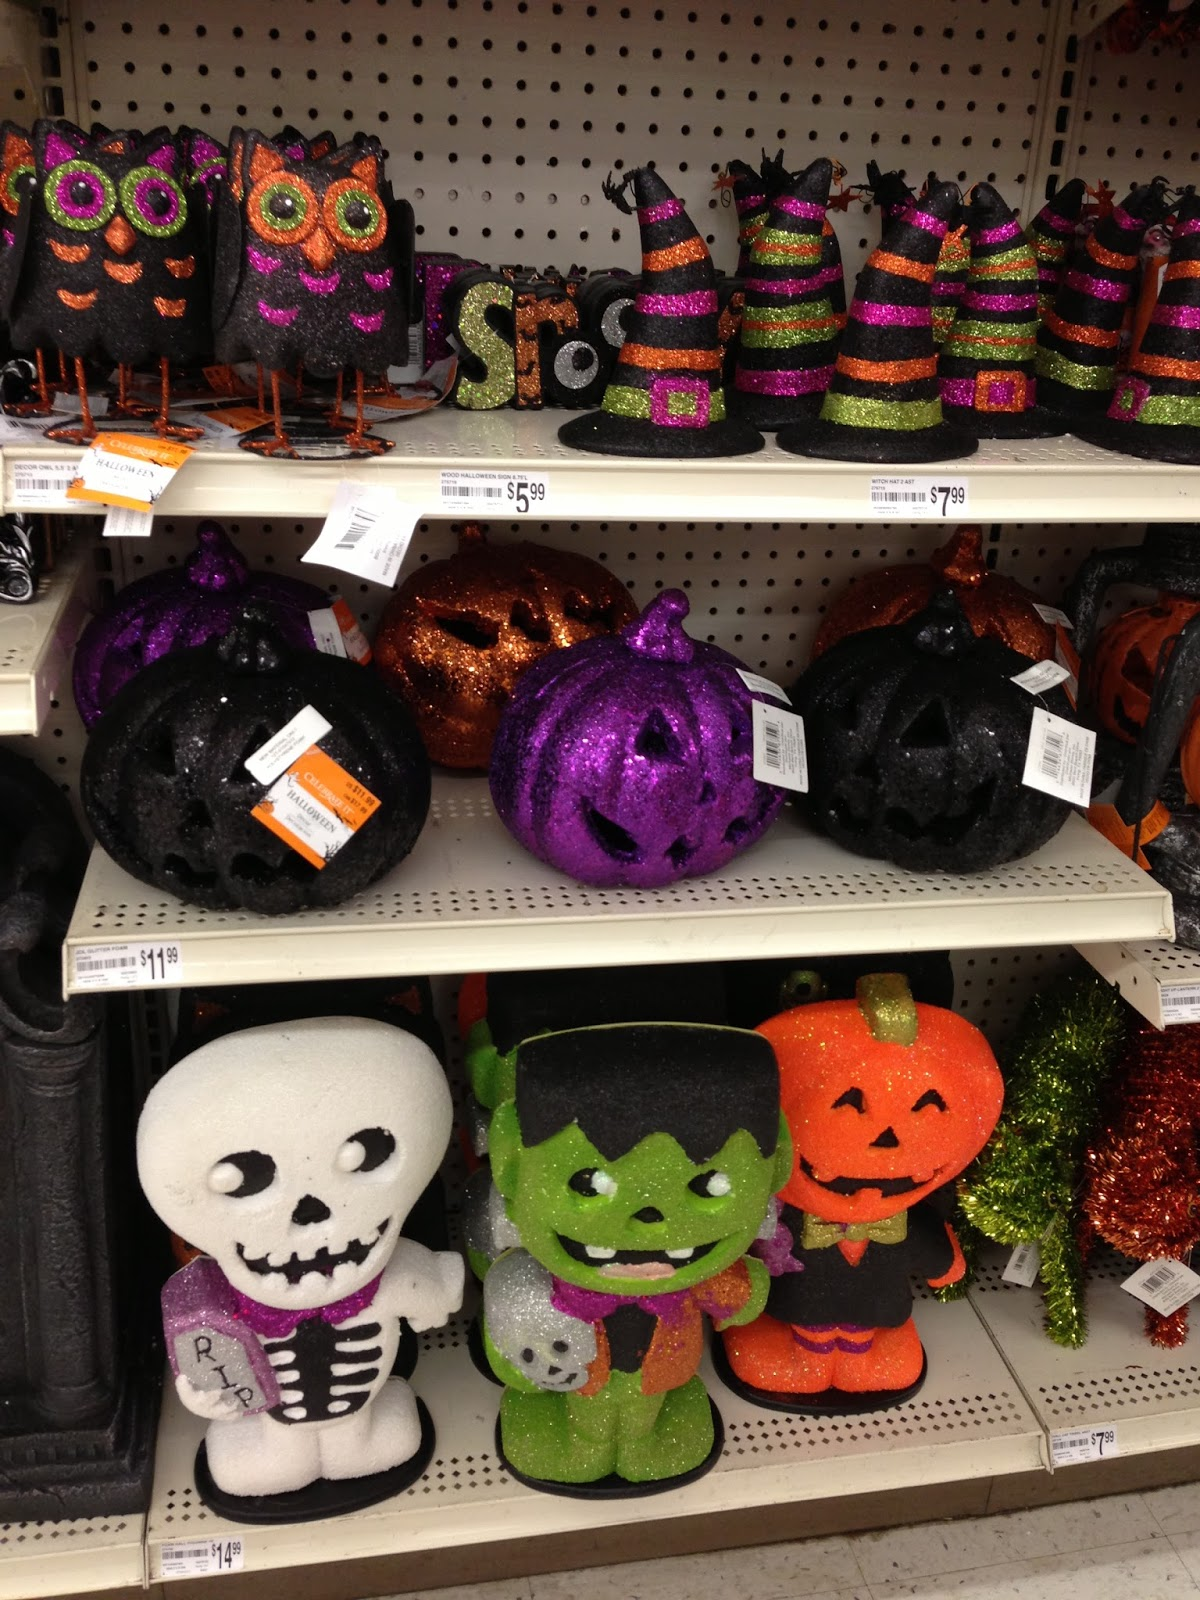 fright bites photo report halloween 2013 finds at michaels and dollar tree - Michaels Halloween Decorations